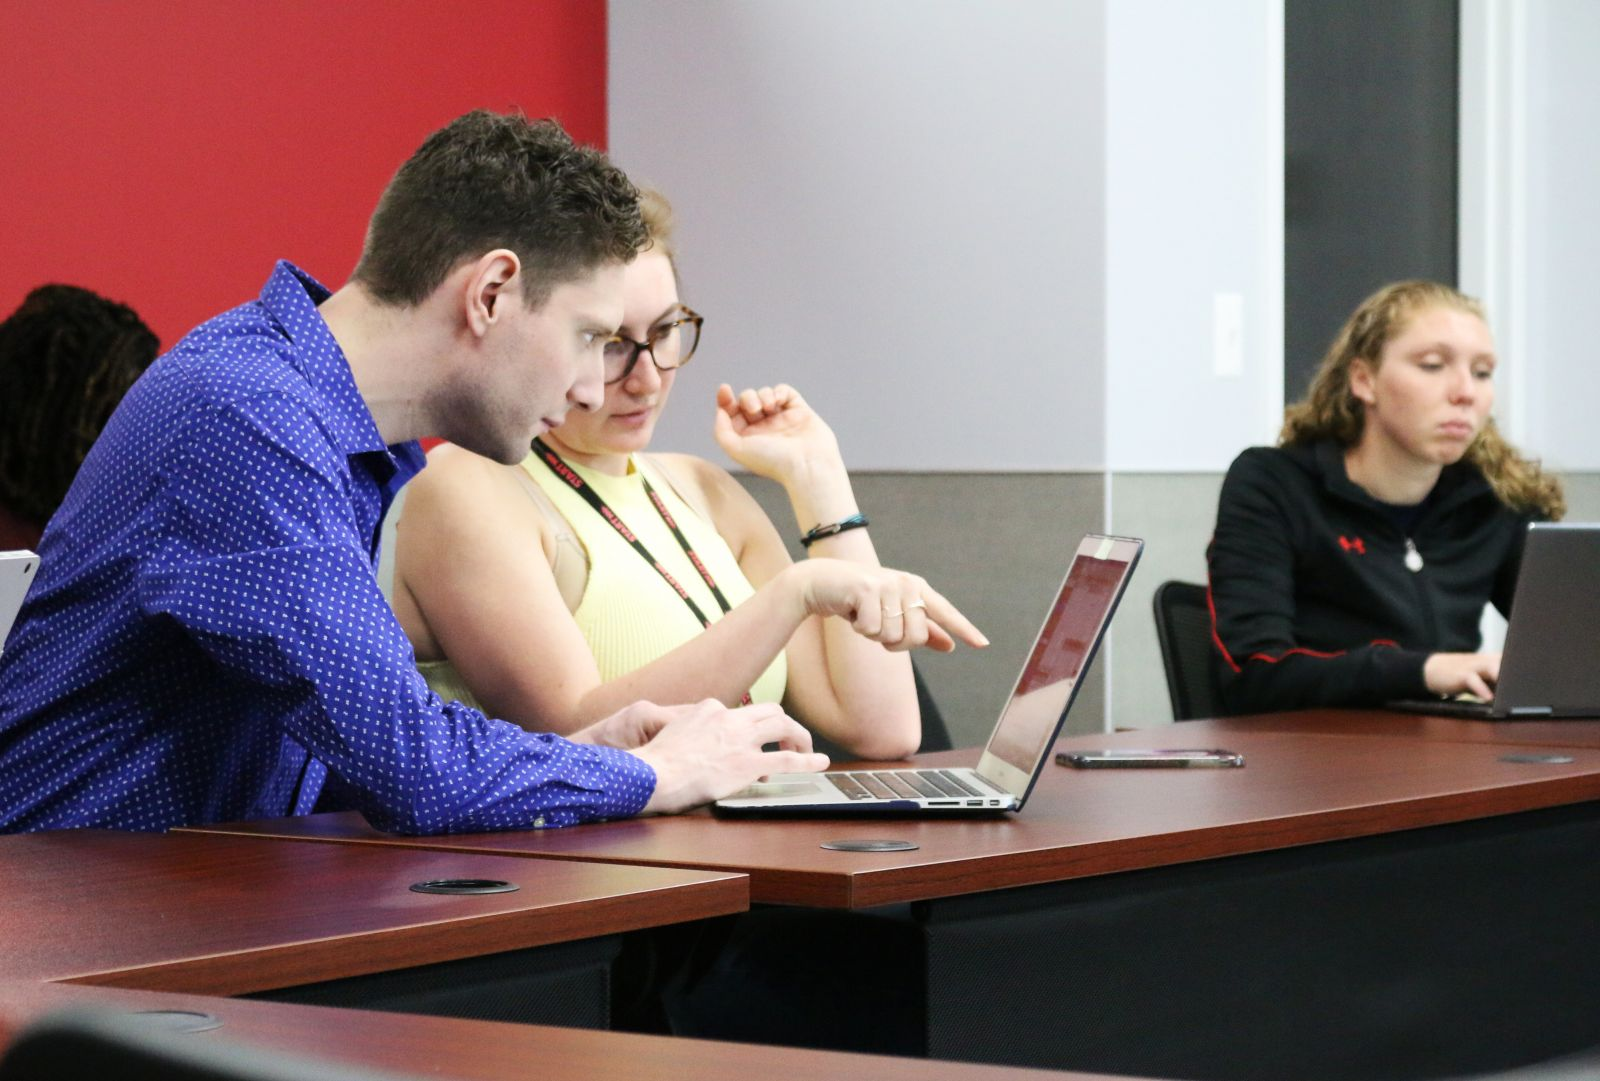 Thomas G. helps student with R software